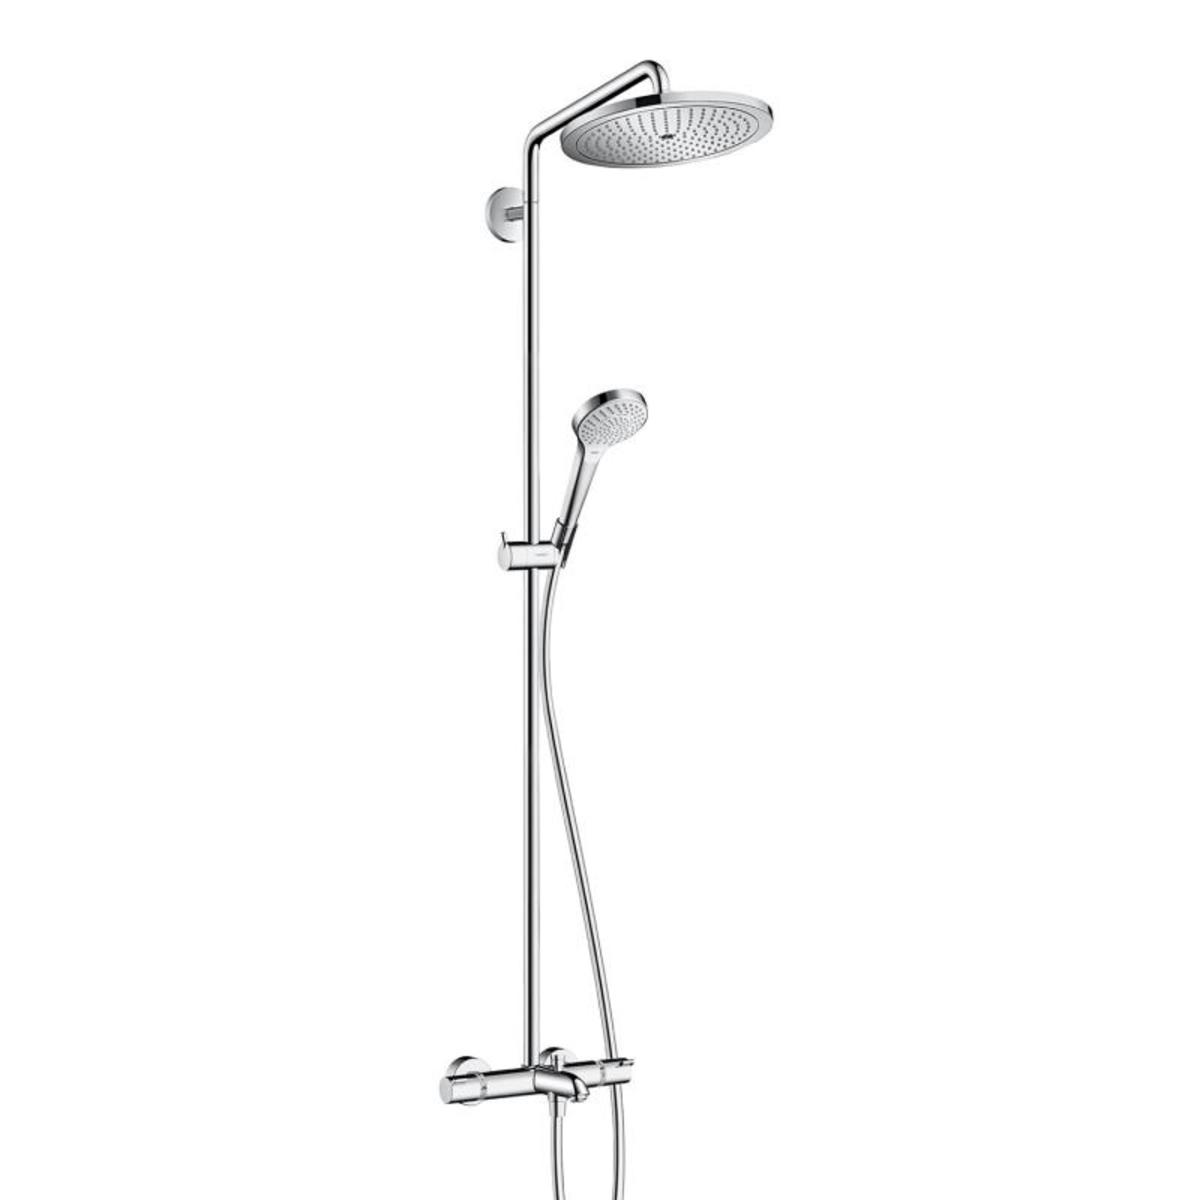 hansgrohe croma select s 280 showerpipe met badthermostaat chroom 26792000. Black Bedroom Furniture Sets. Home Design Ideas